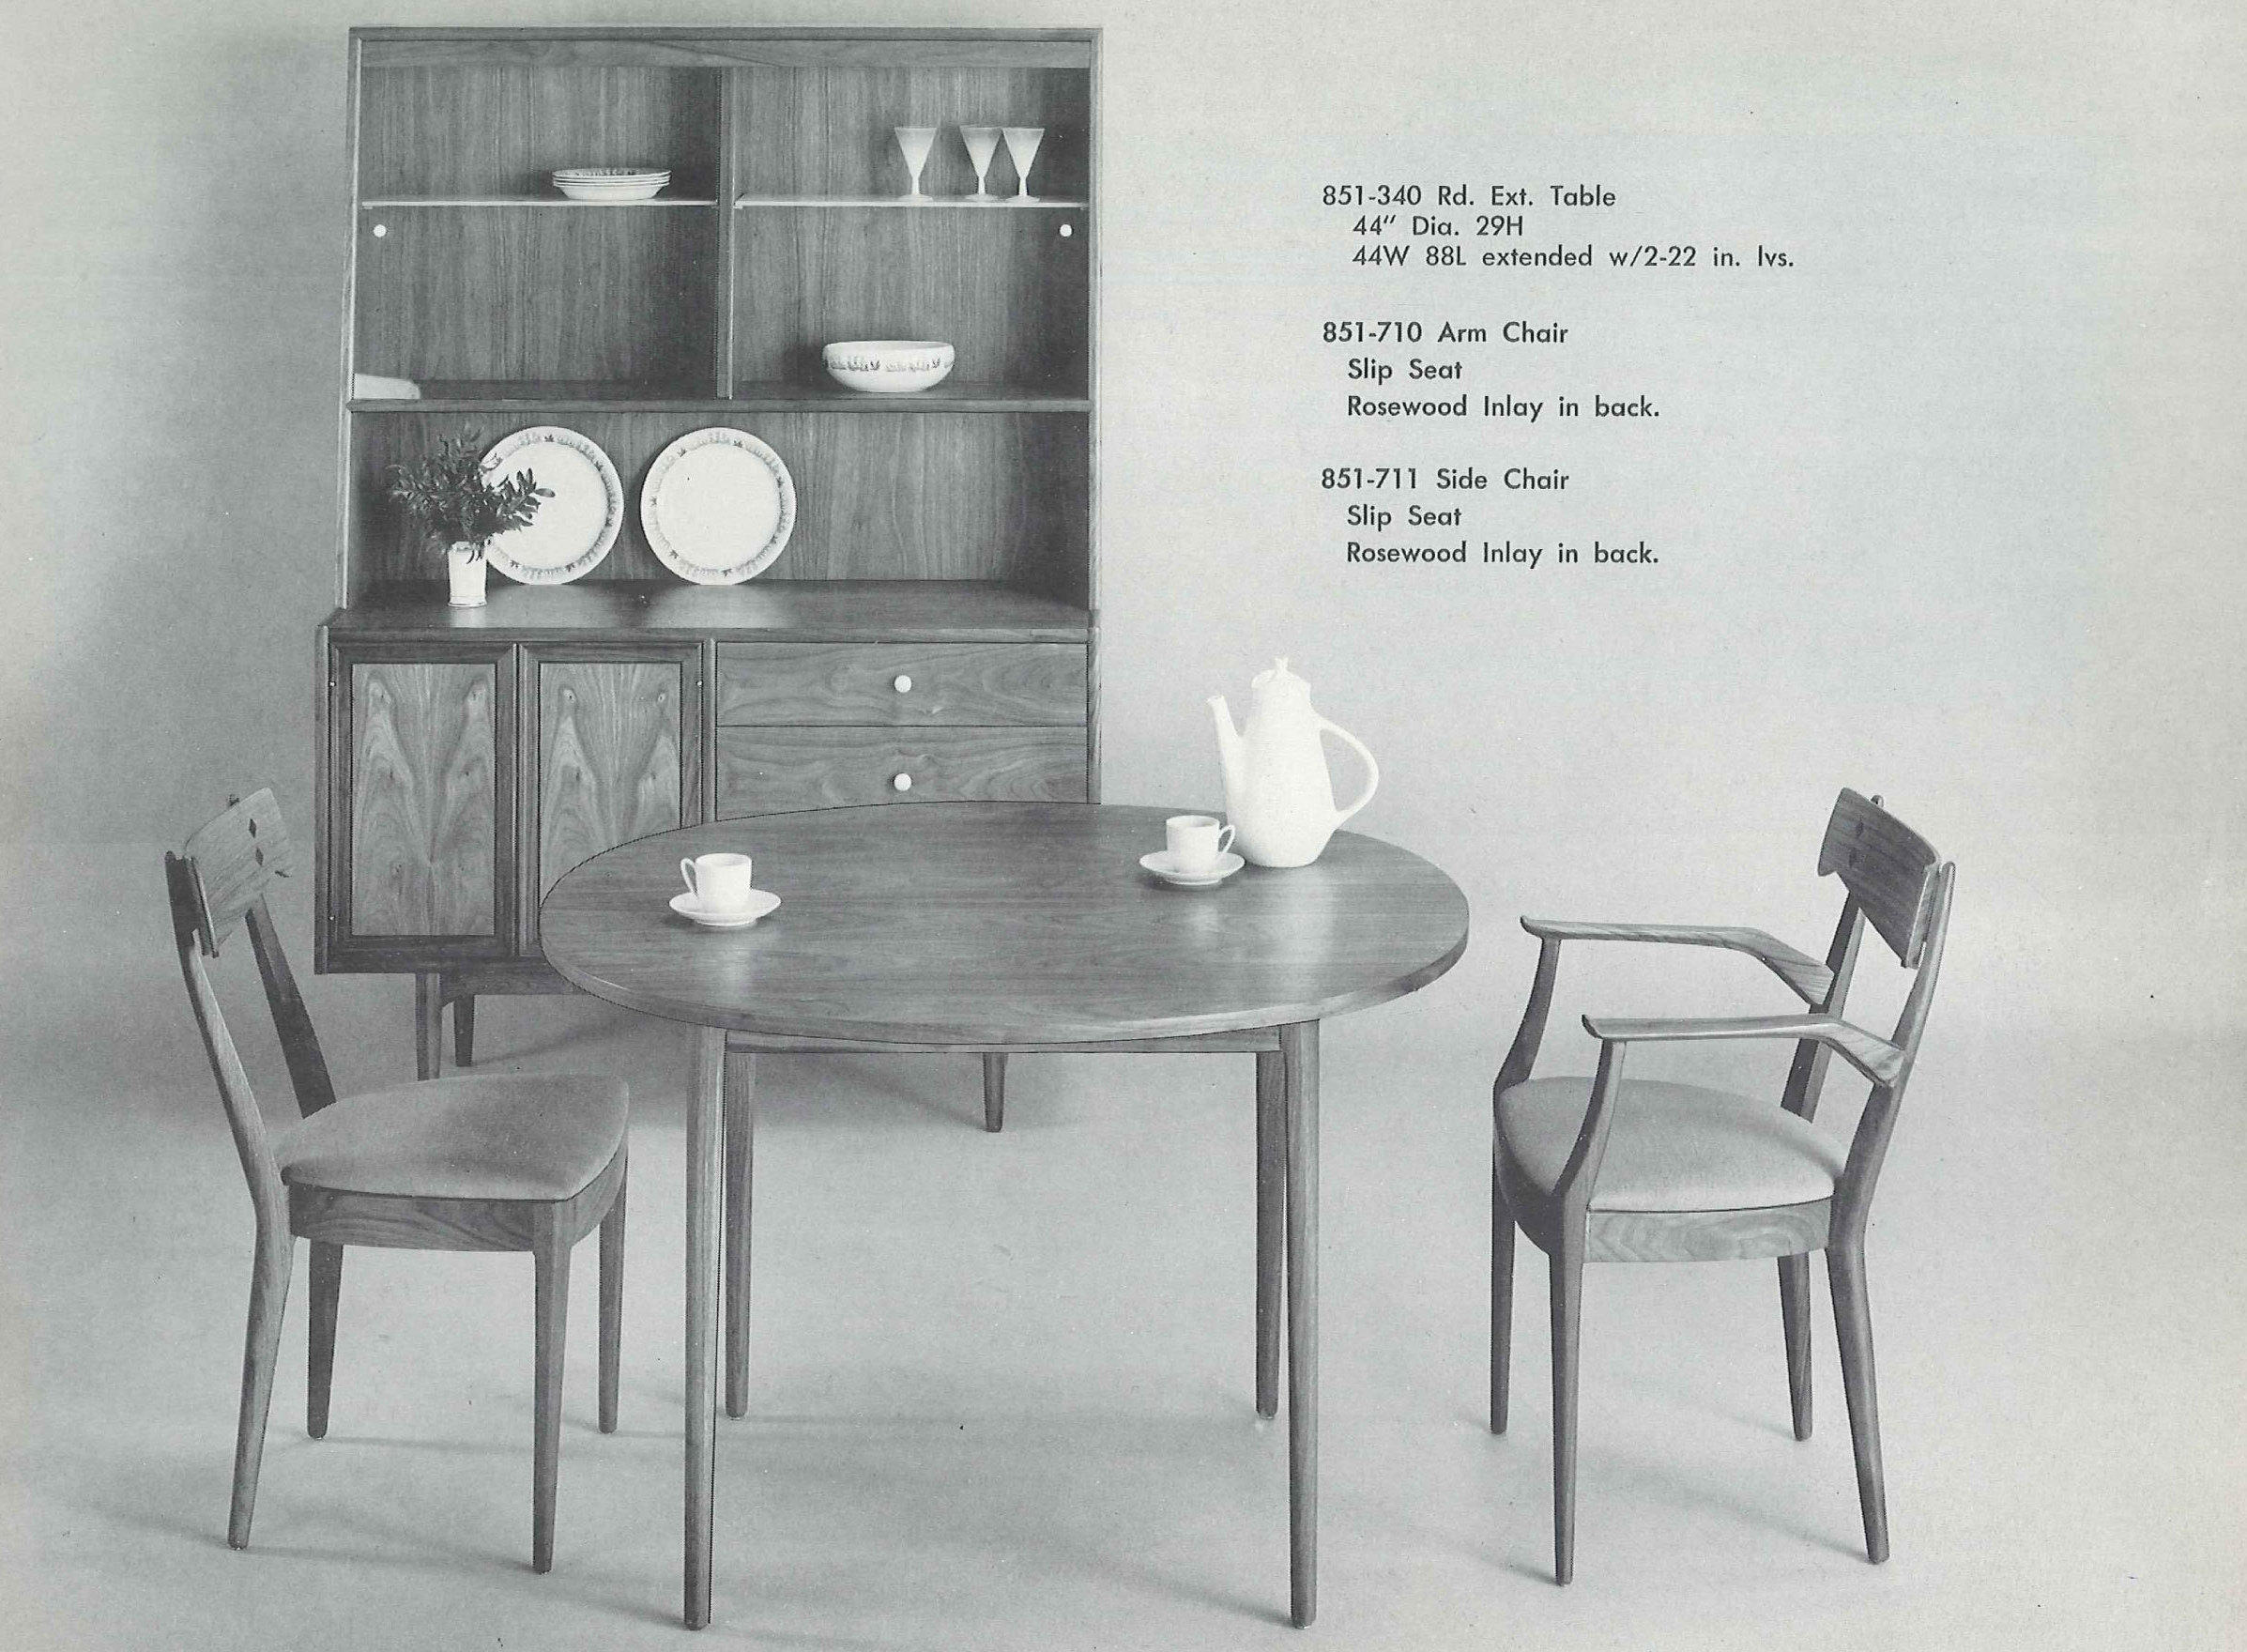 NPRs Andrea Hsu Paid 75 For Her Midcentury Modern Table And Chairs Shown Here In A 1963 Drexel Declaration Catalog She Quickly Realized It Was Steal